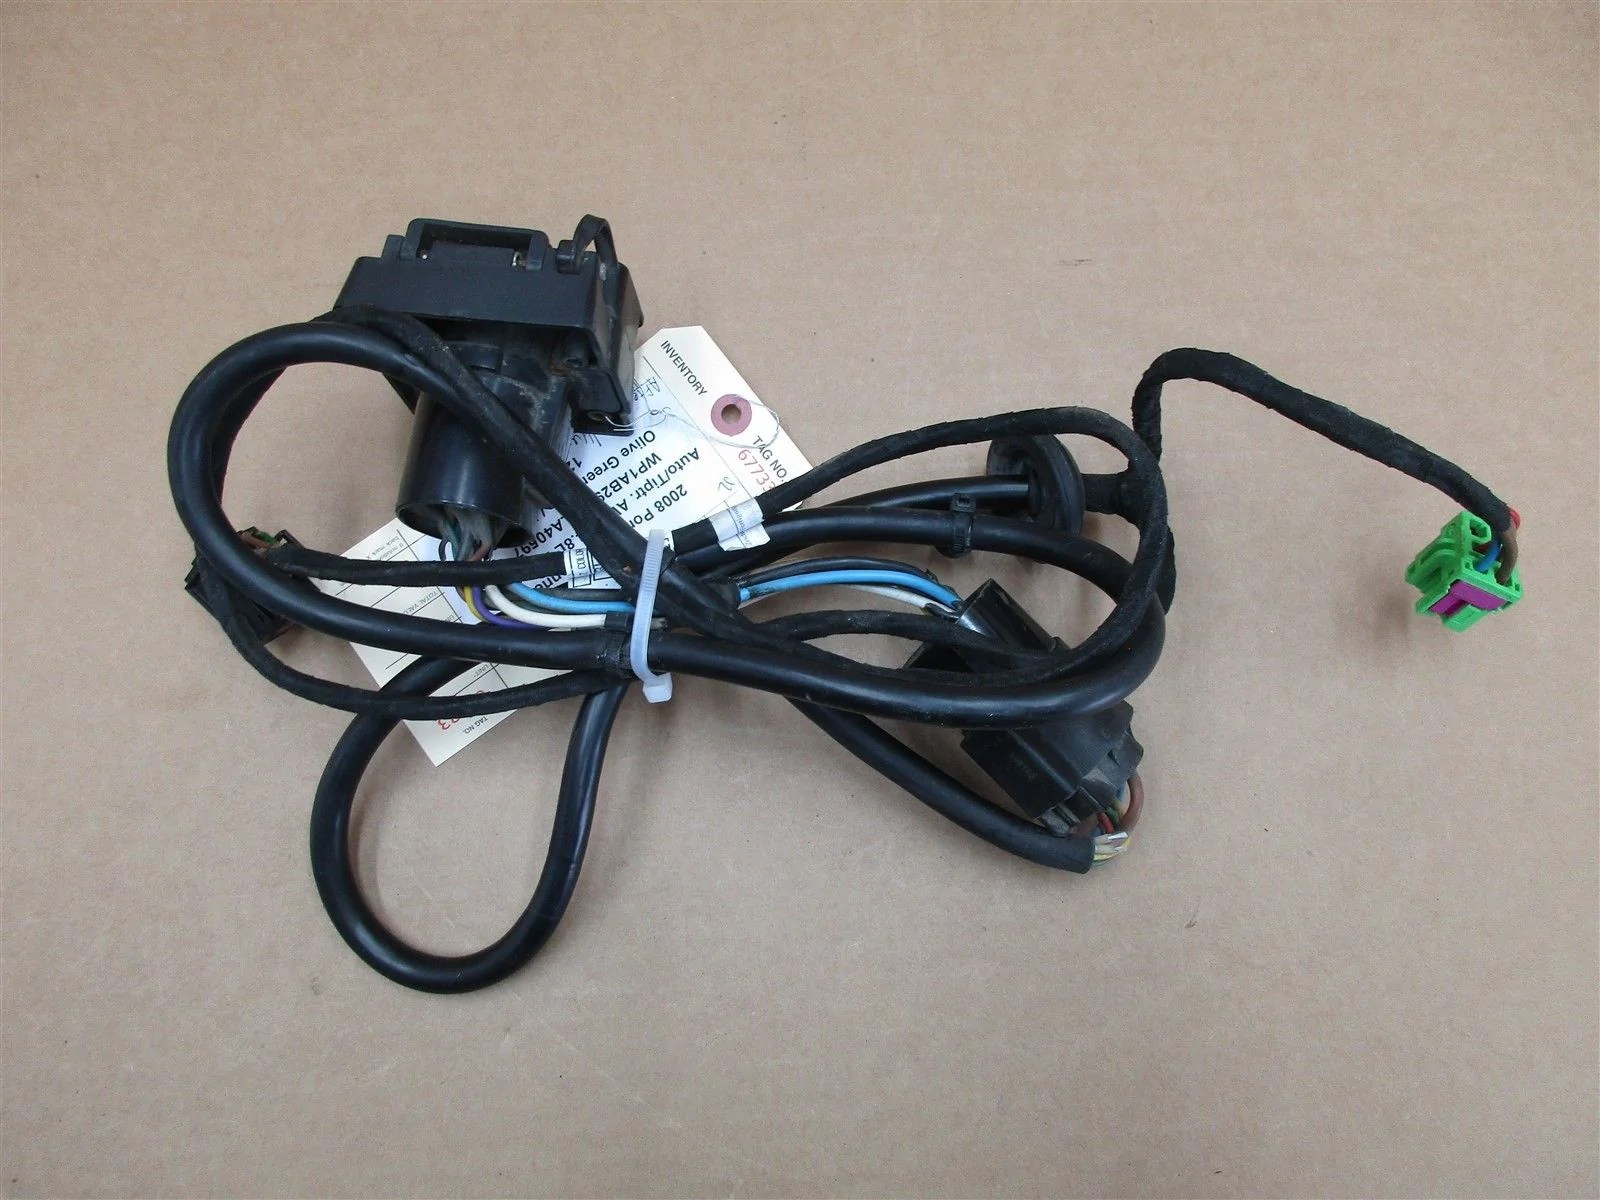 medium resolution of 08 cayenne s porsche 957 aftermarket wiring harness u haul 327007321003 122 873